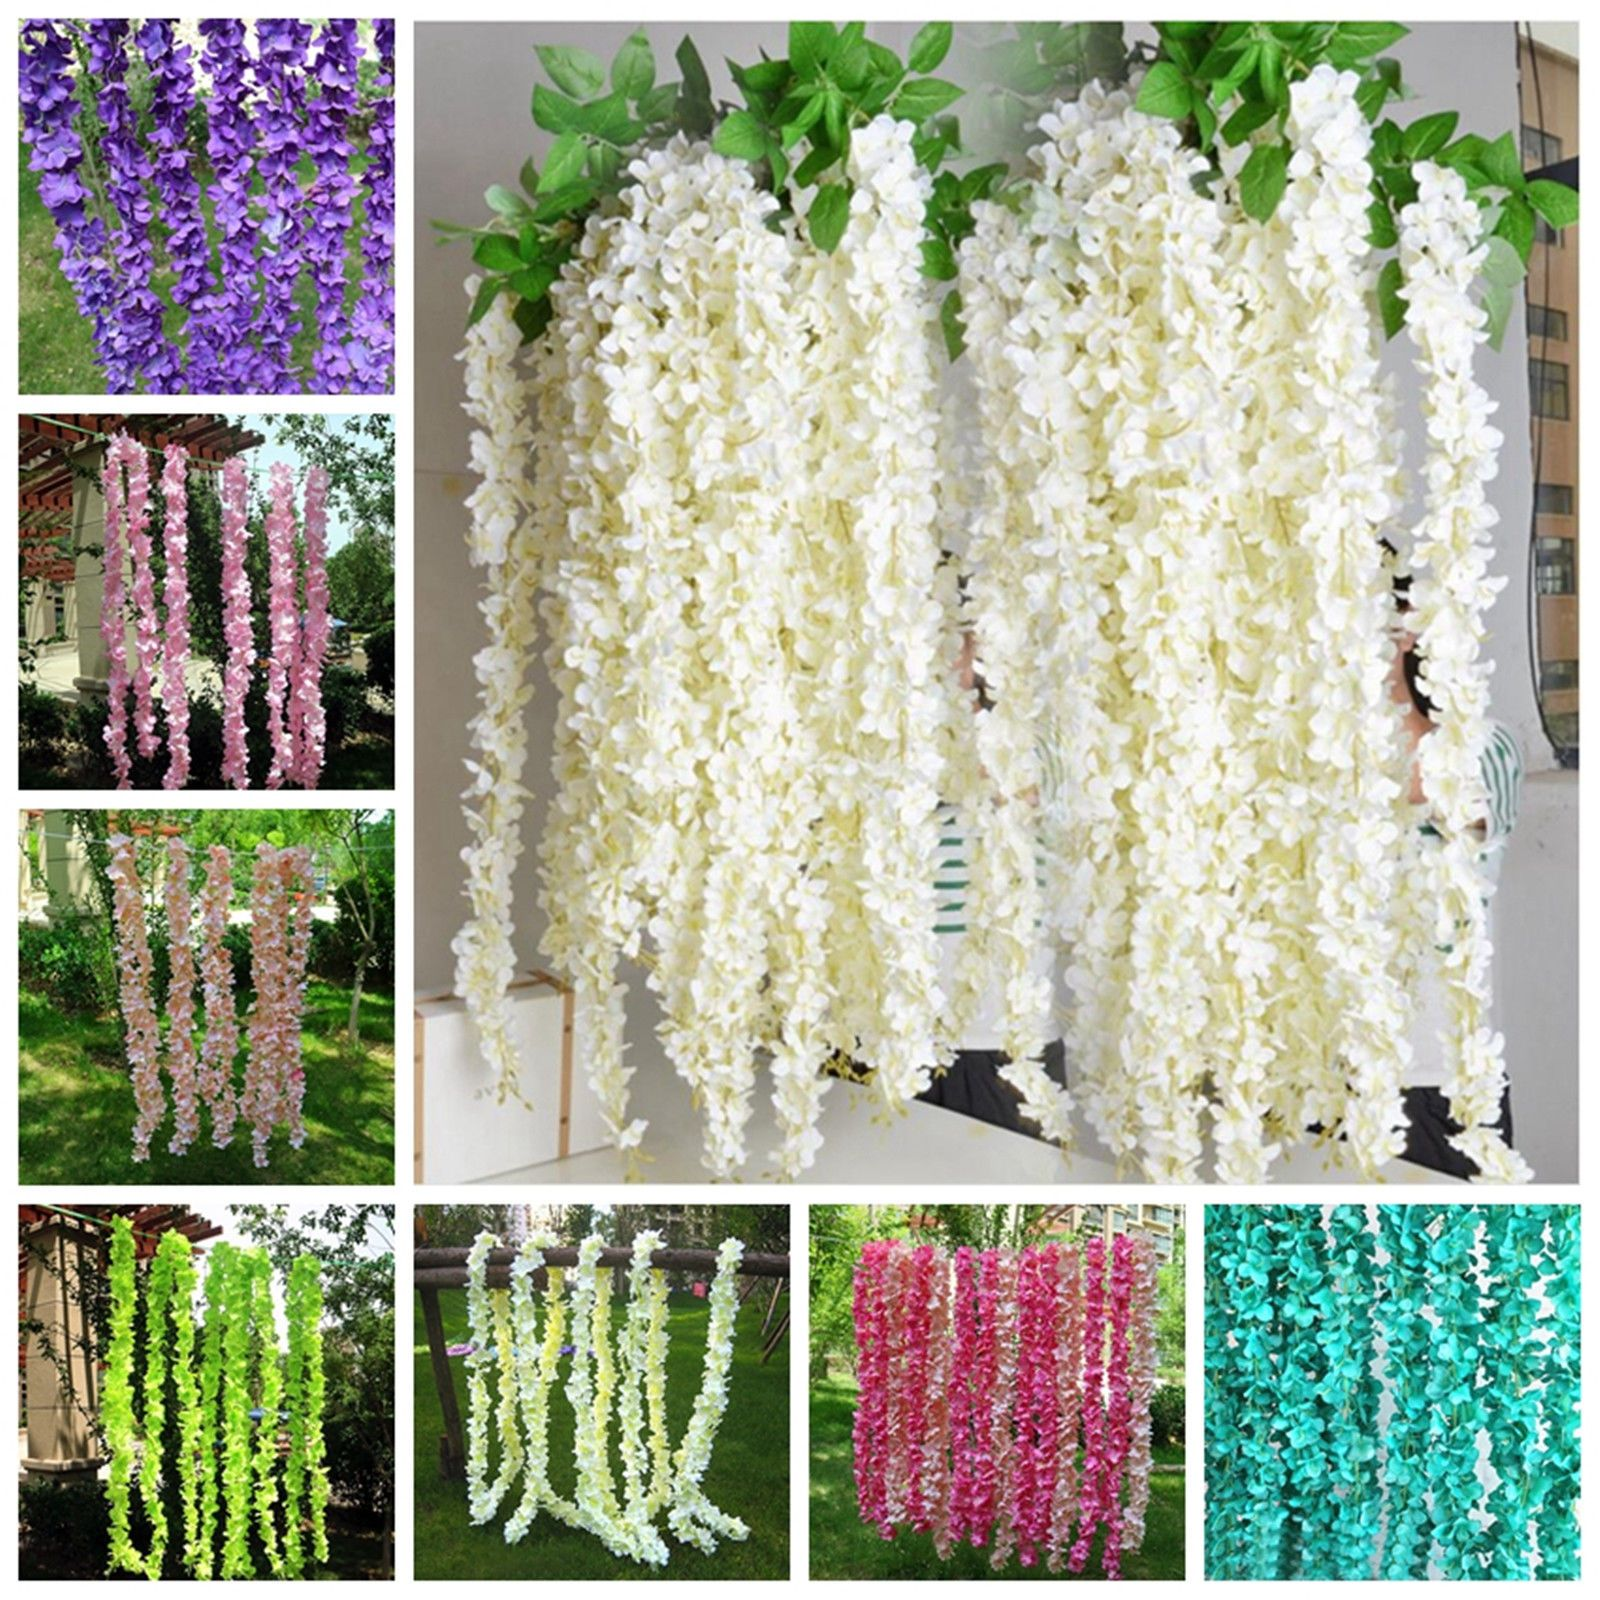 273 1pcs artificial silk hydrangea flowers vine diy wall hanging 273 1pcs artificial silk hydrangea flowers vine diy wall hanging wedding decoration ebay junglespirit Image collections